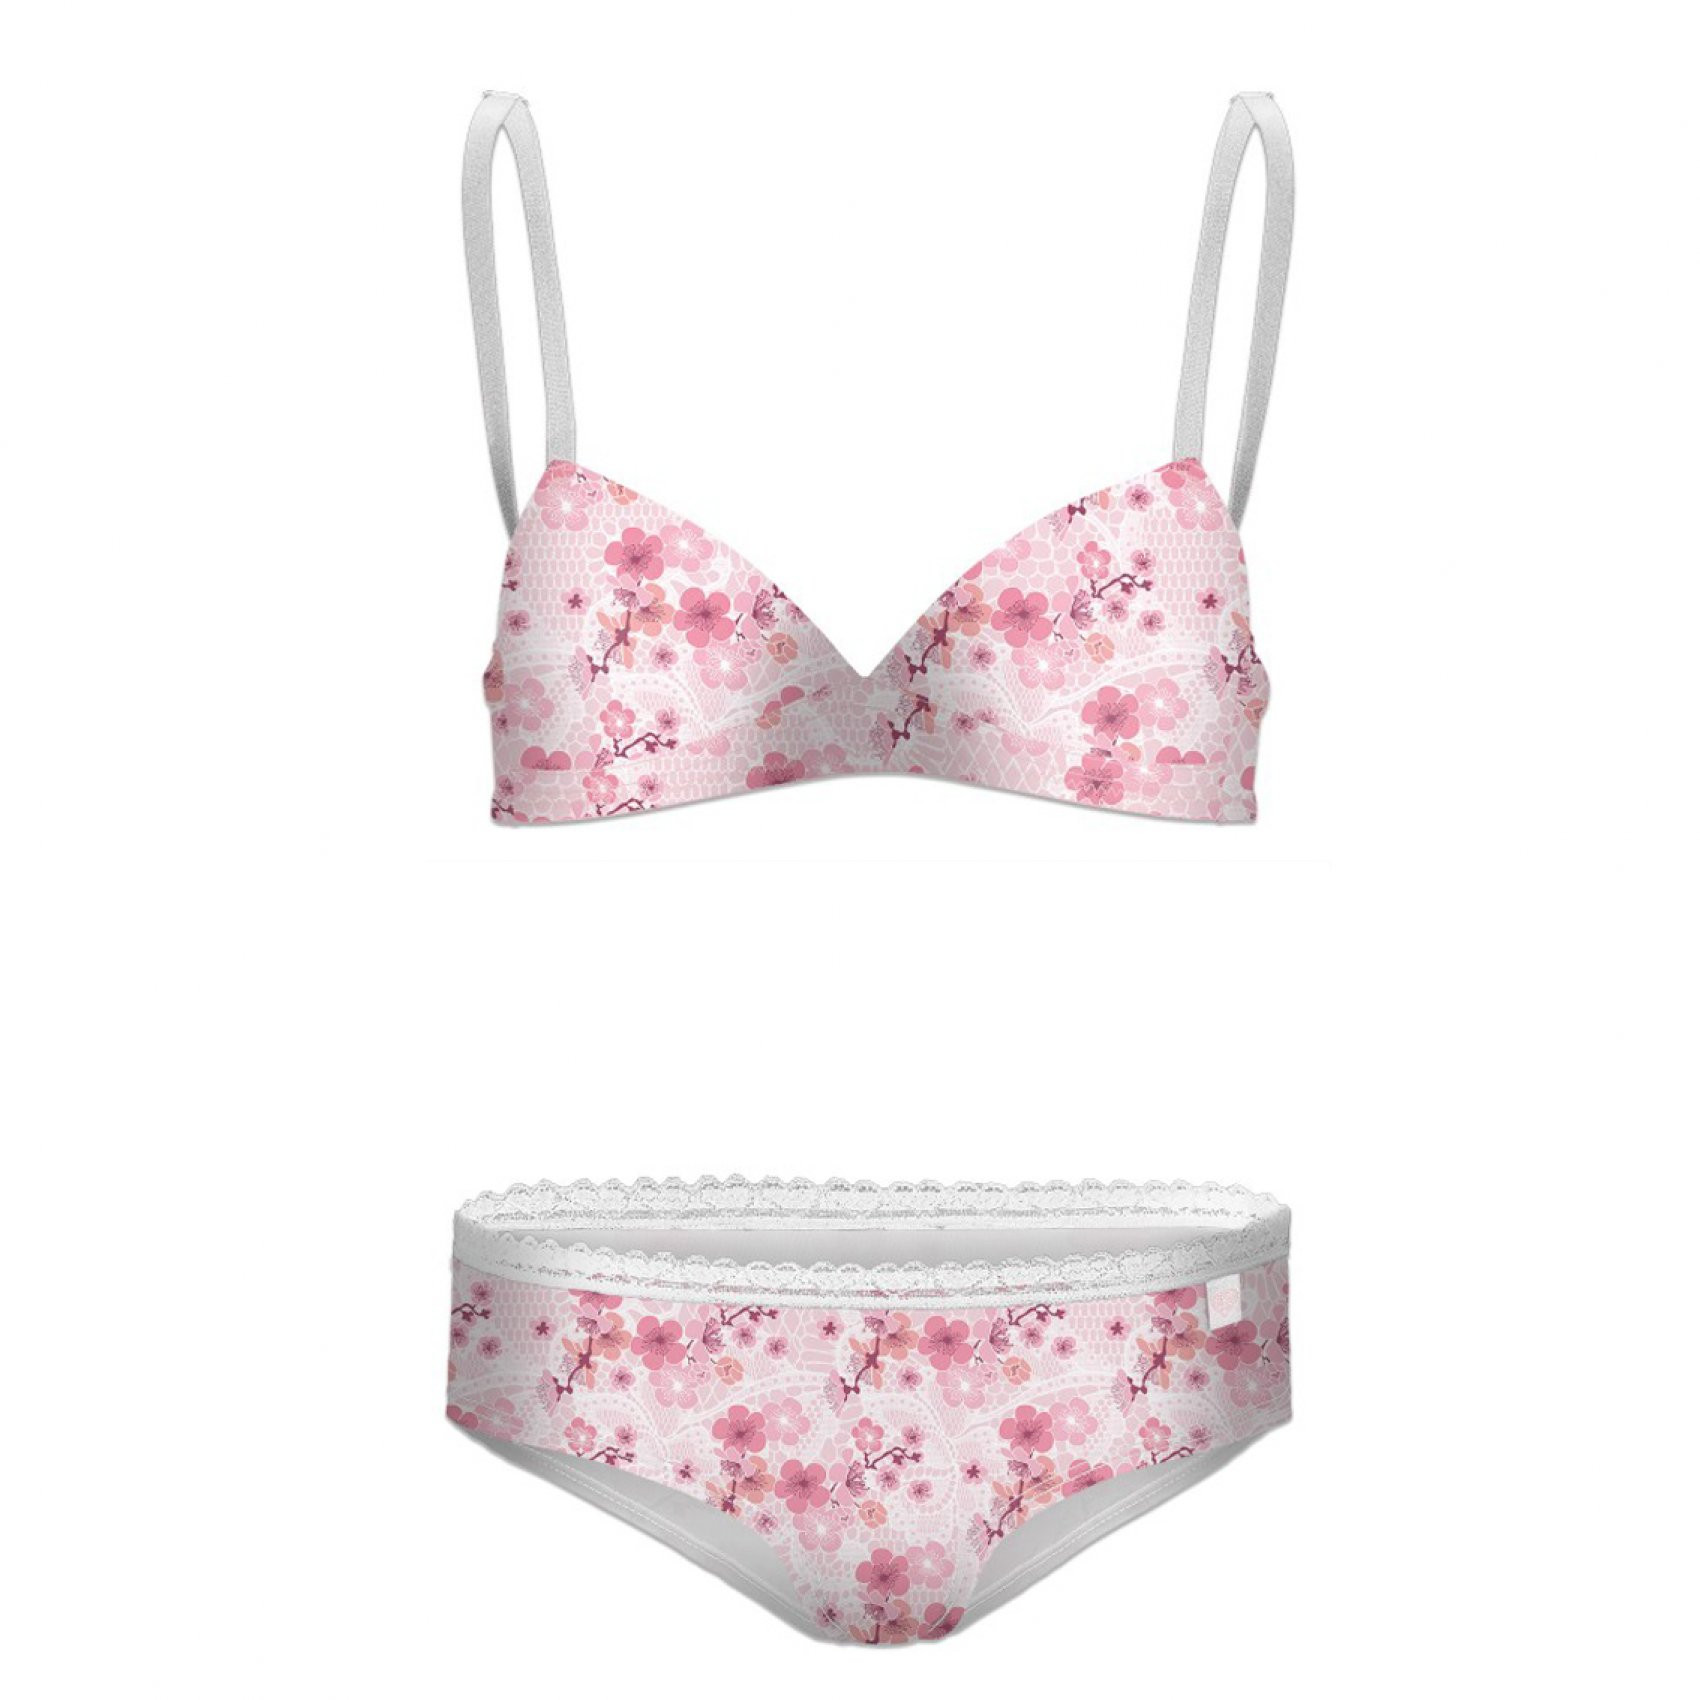 Ensemble boxer fille fleurs miss freegun (photo)